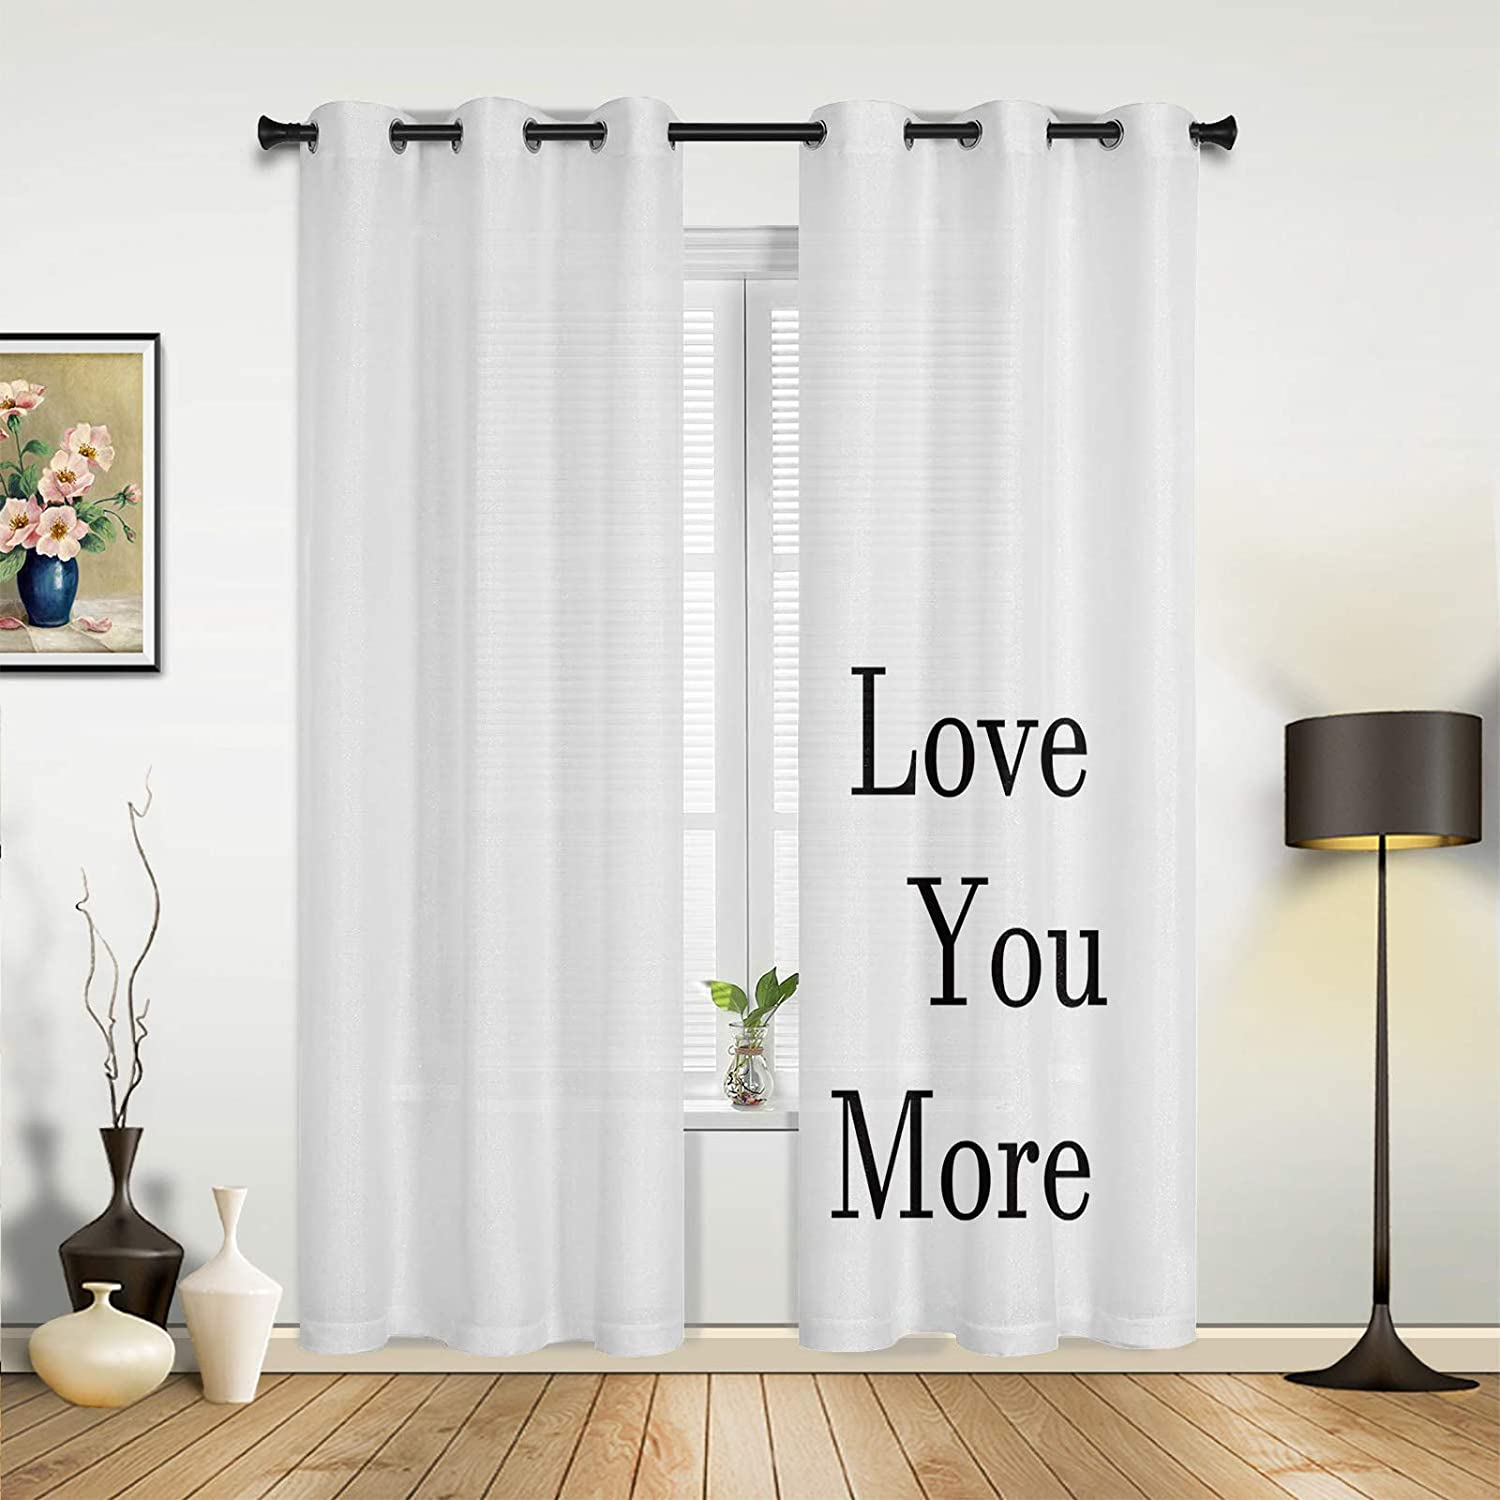 High order Beauty unisex Decor Window Sheer Curtains Room Love Living for Bedroom